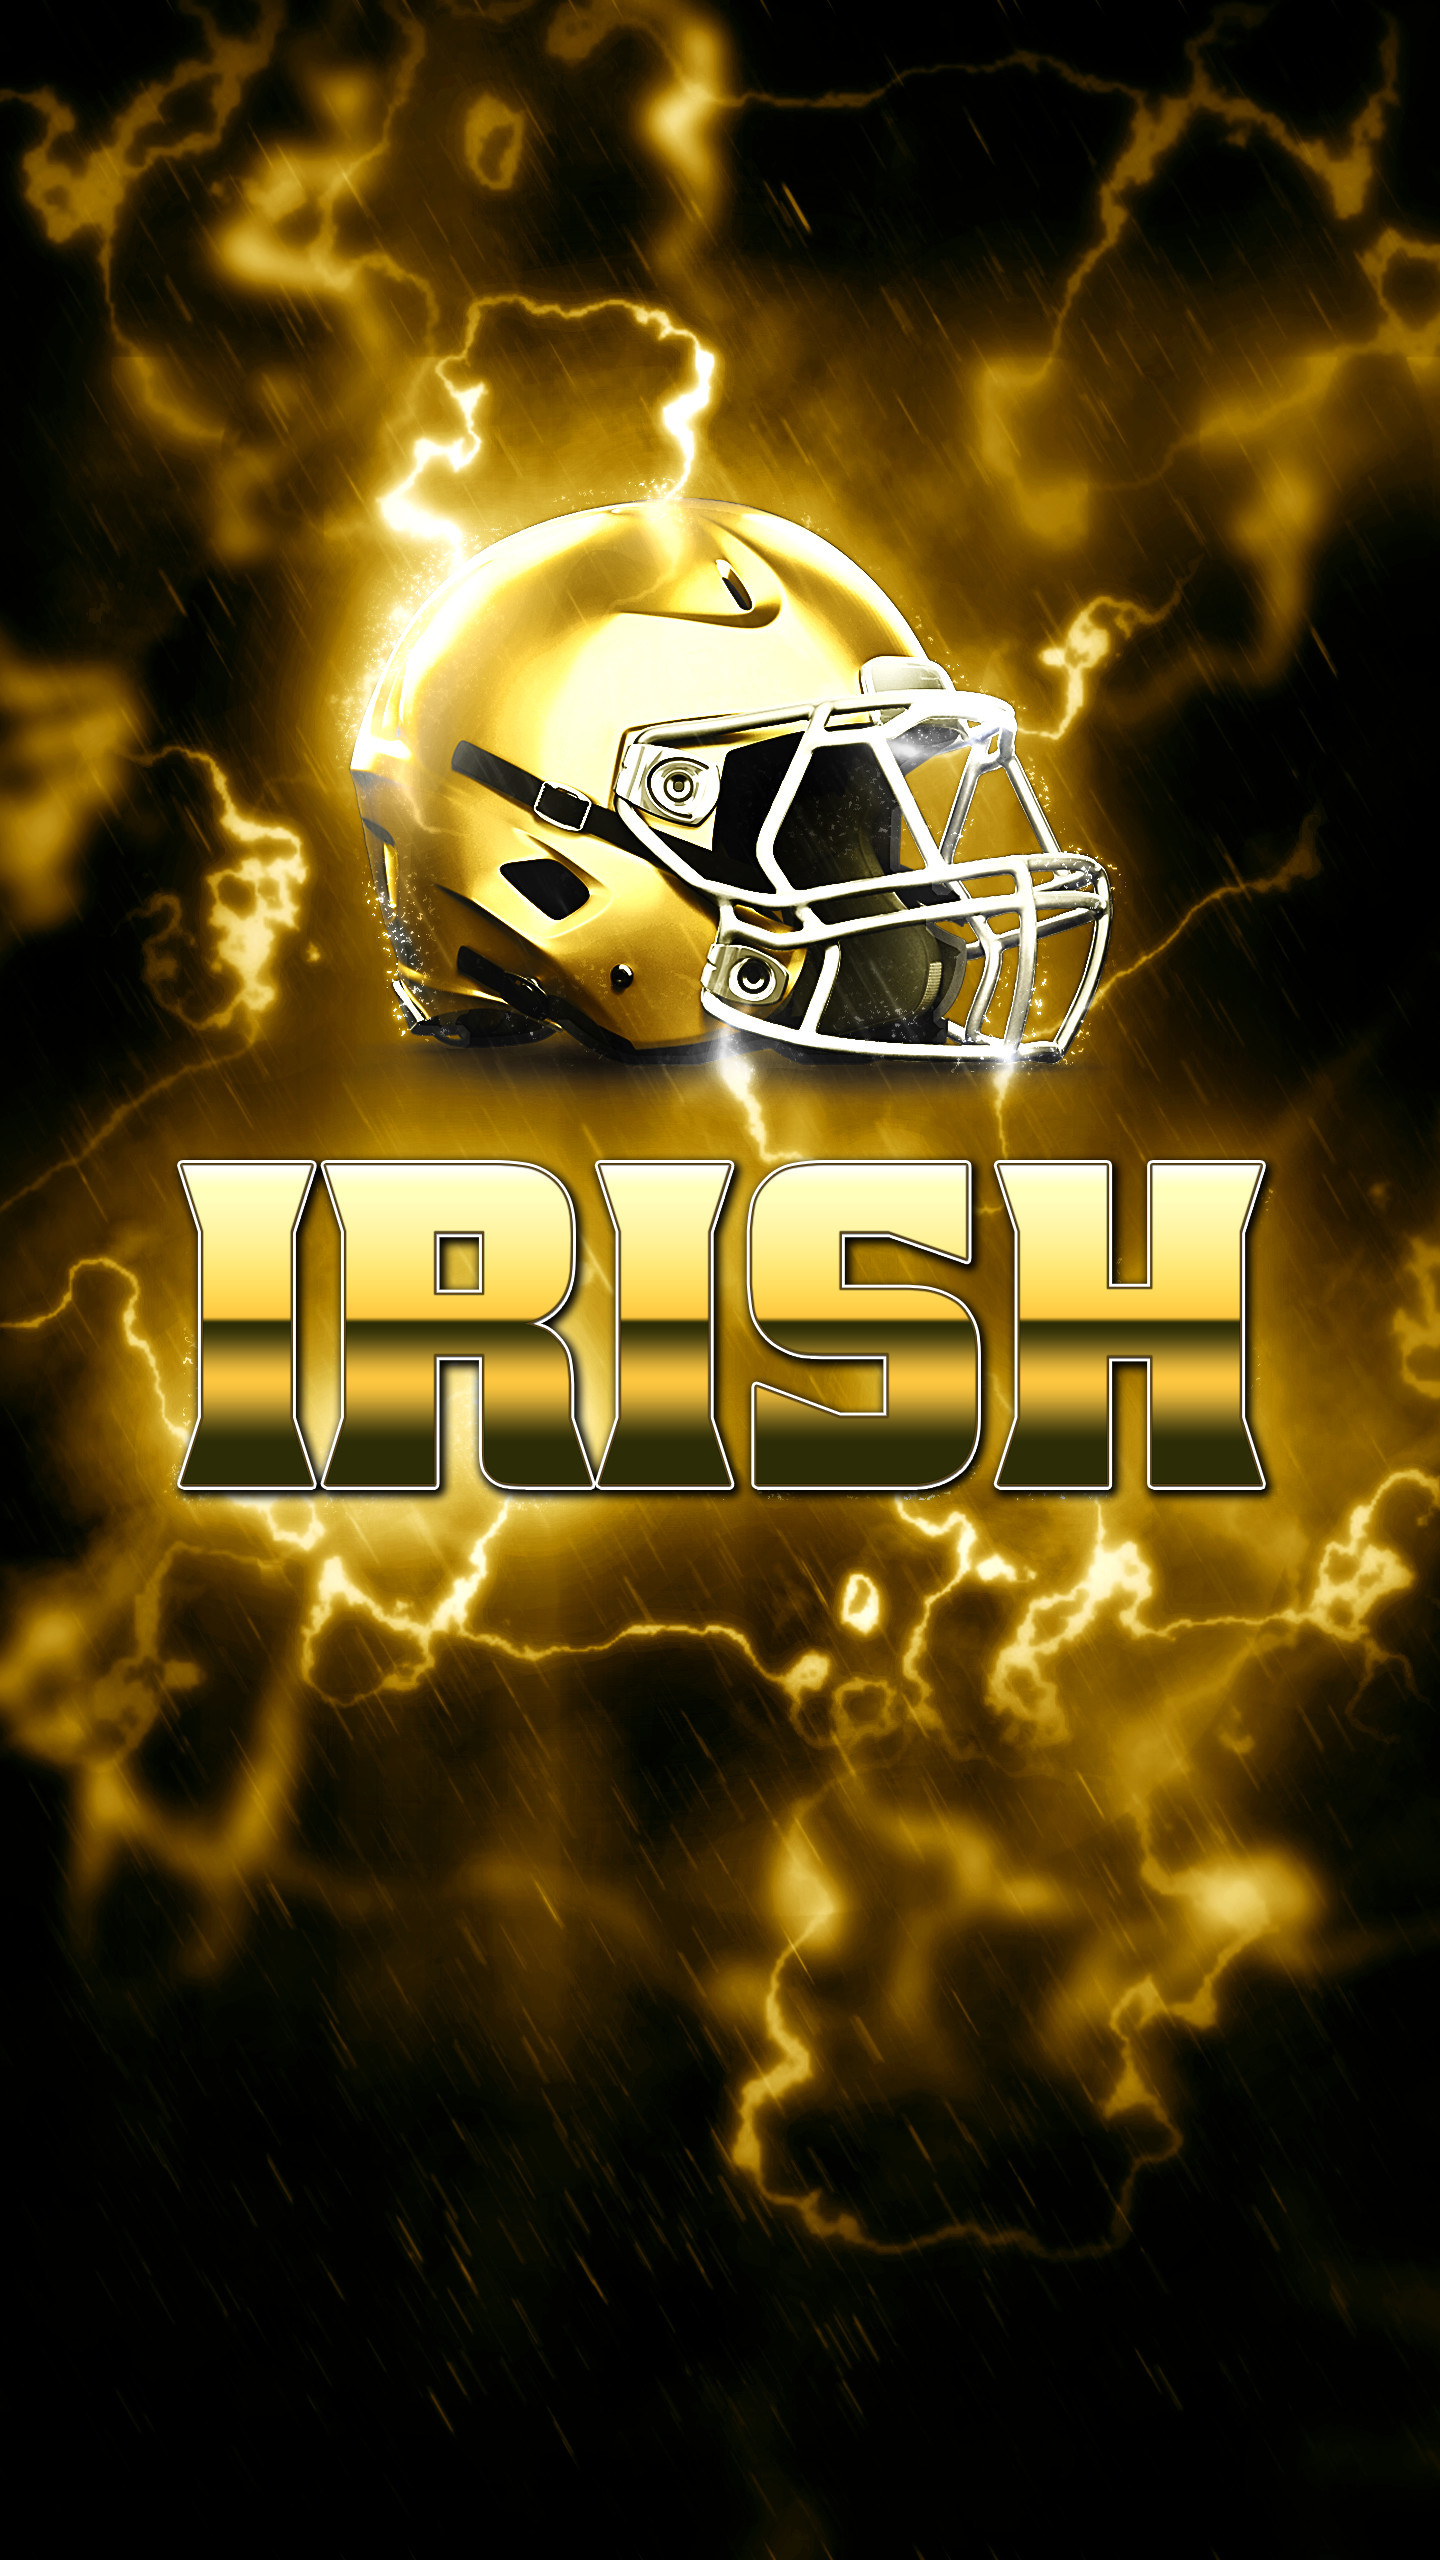 1440x2560 Res: 2560x1440, NOTRE DAME Fighting Irish college football ...